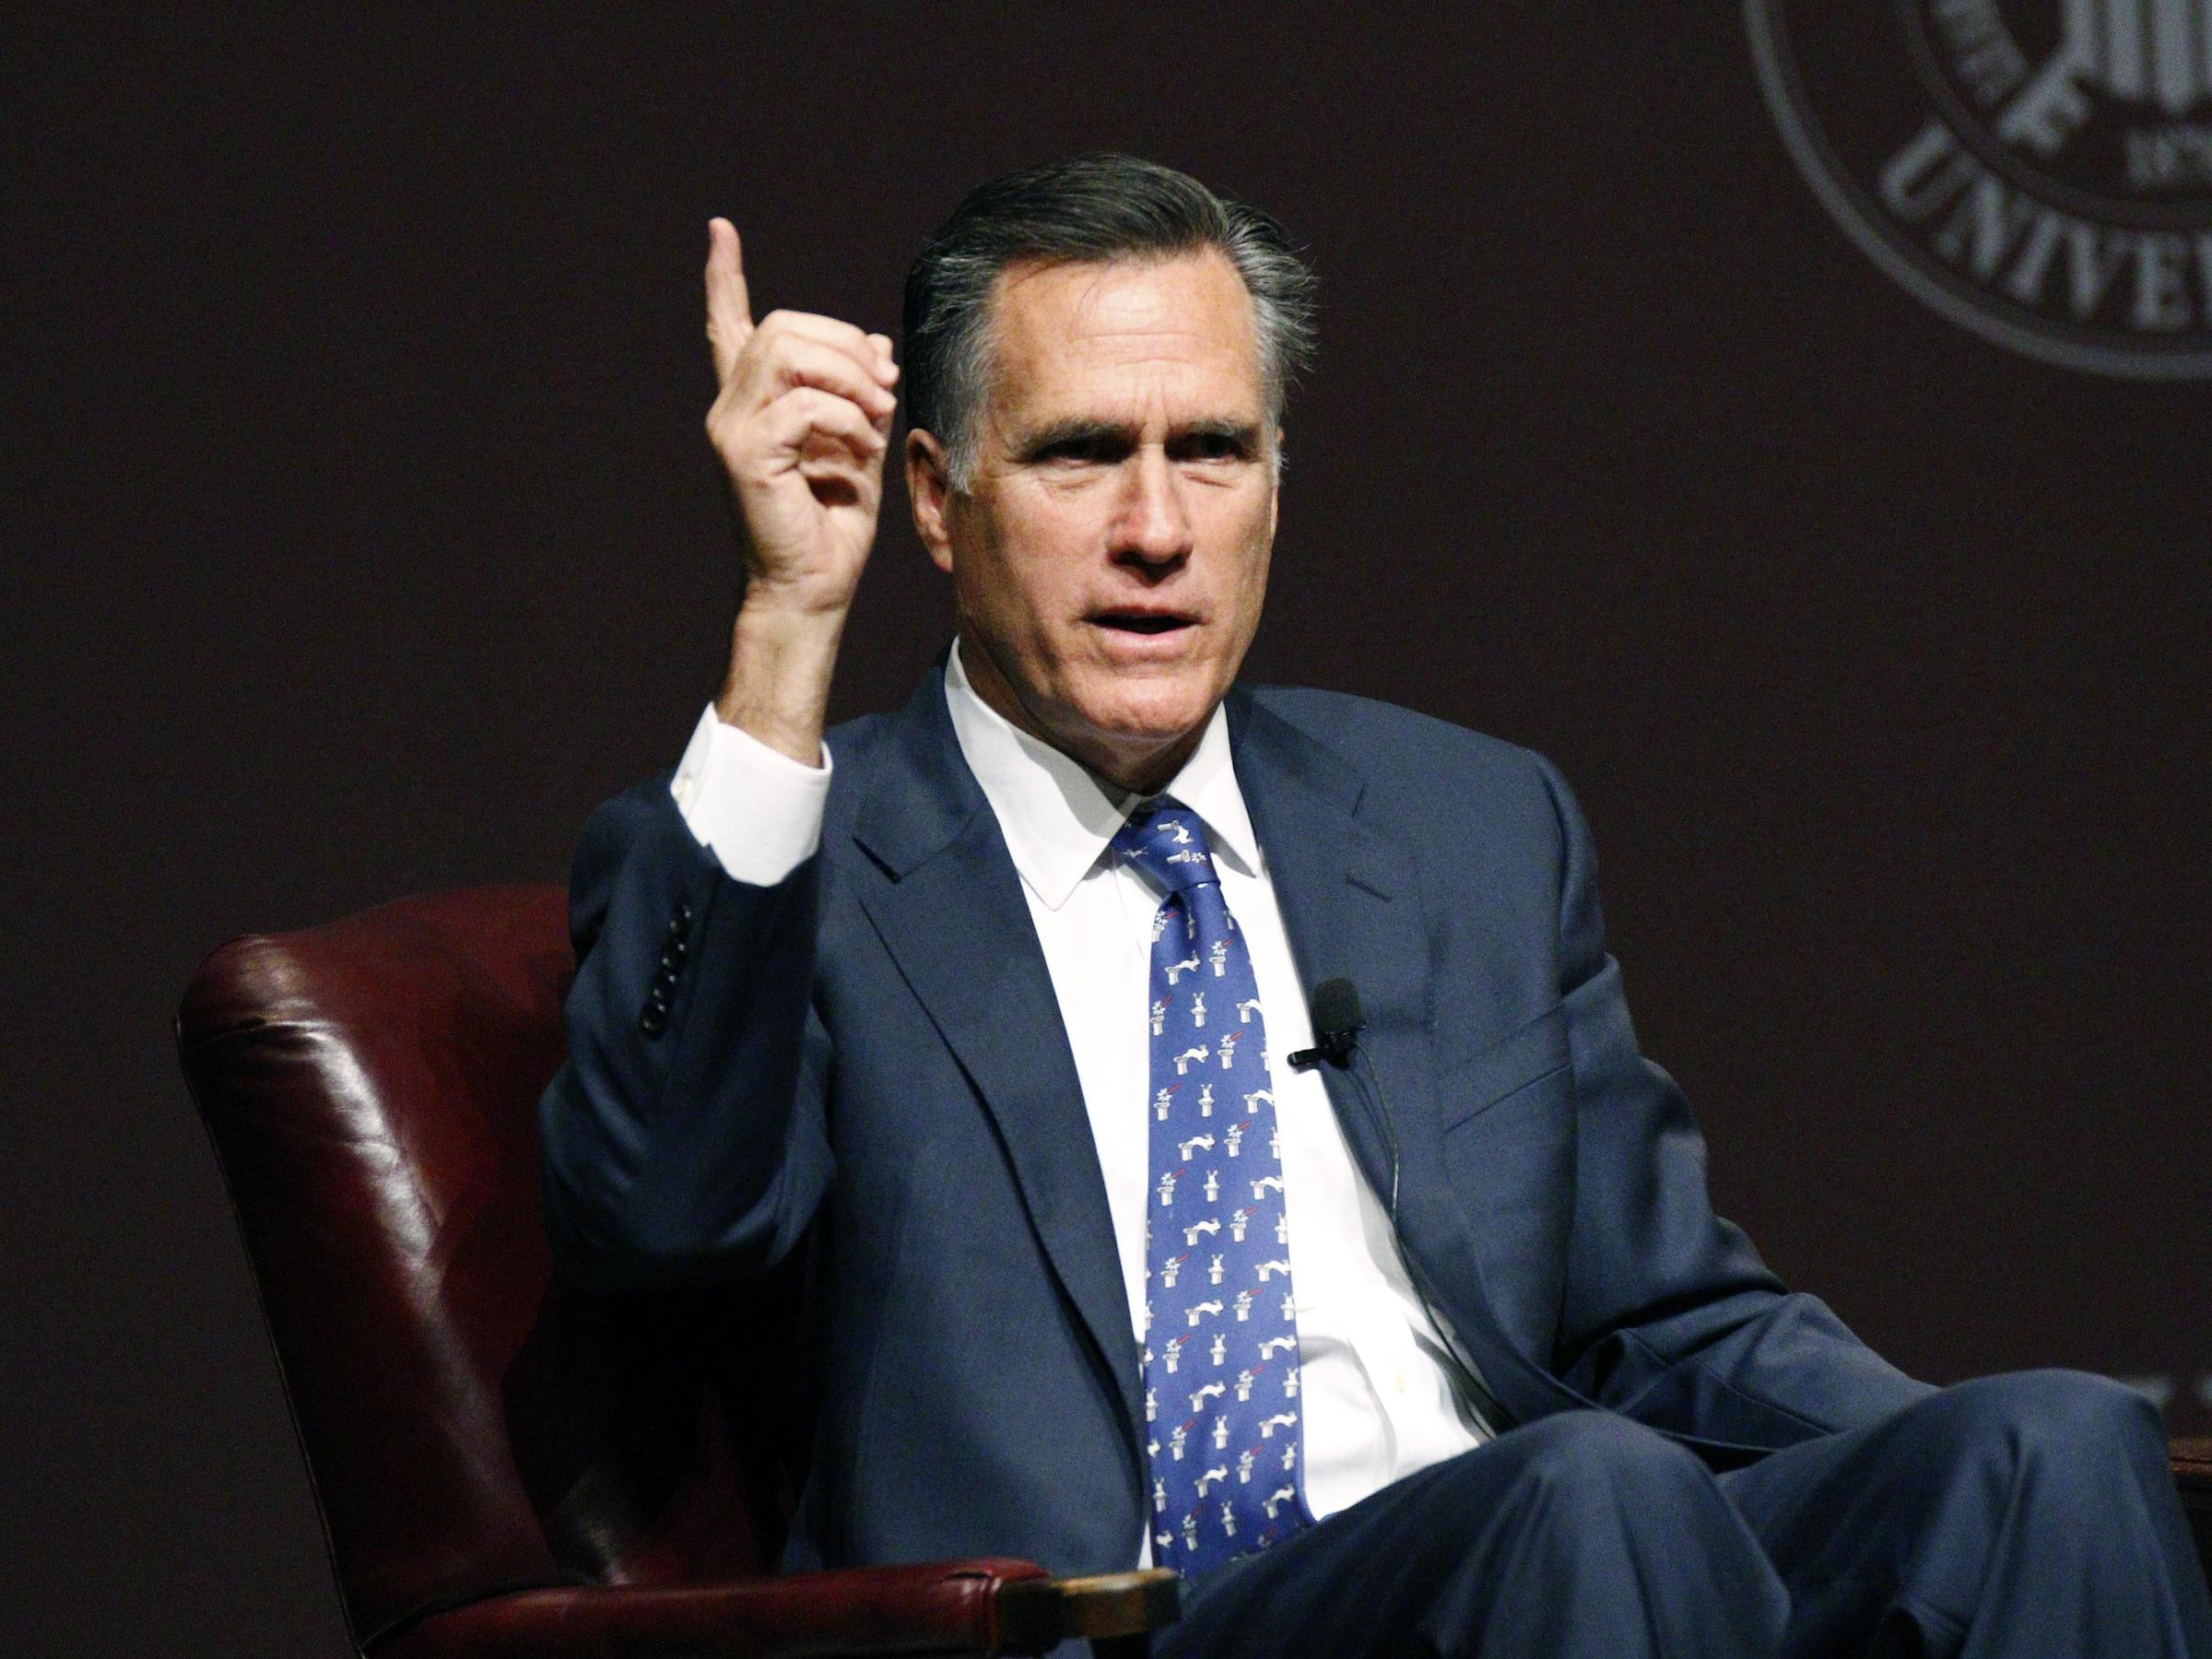 governor mitt romneys run for presidency In a move that surprised absolutely no one, mitt romney announced this morning via video that he will run for the utah senate seat orrin hatch plans to vacate in 2019.